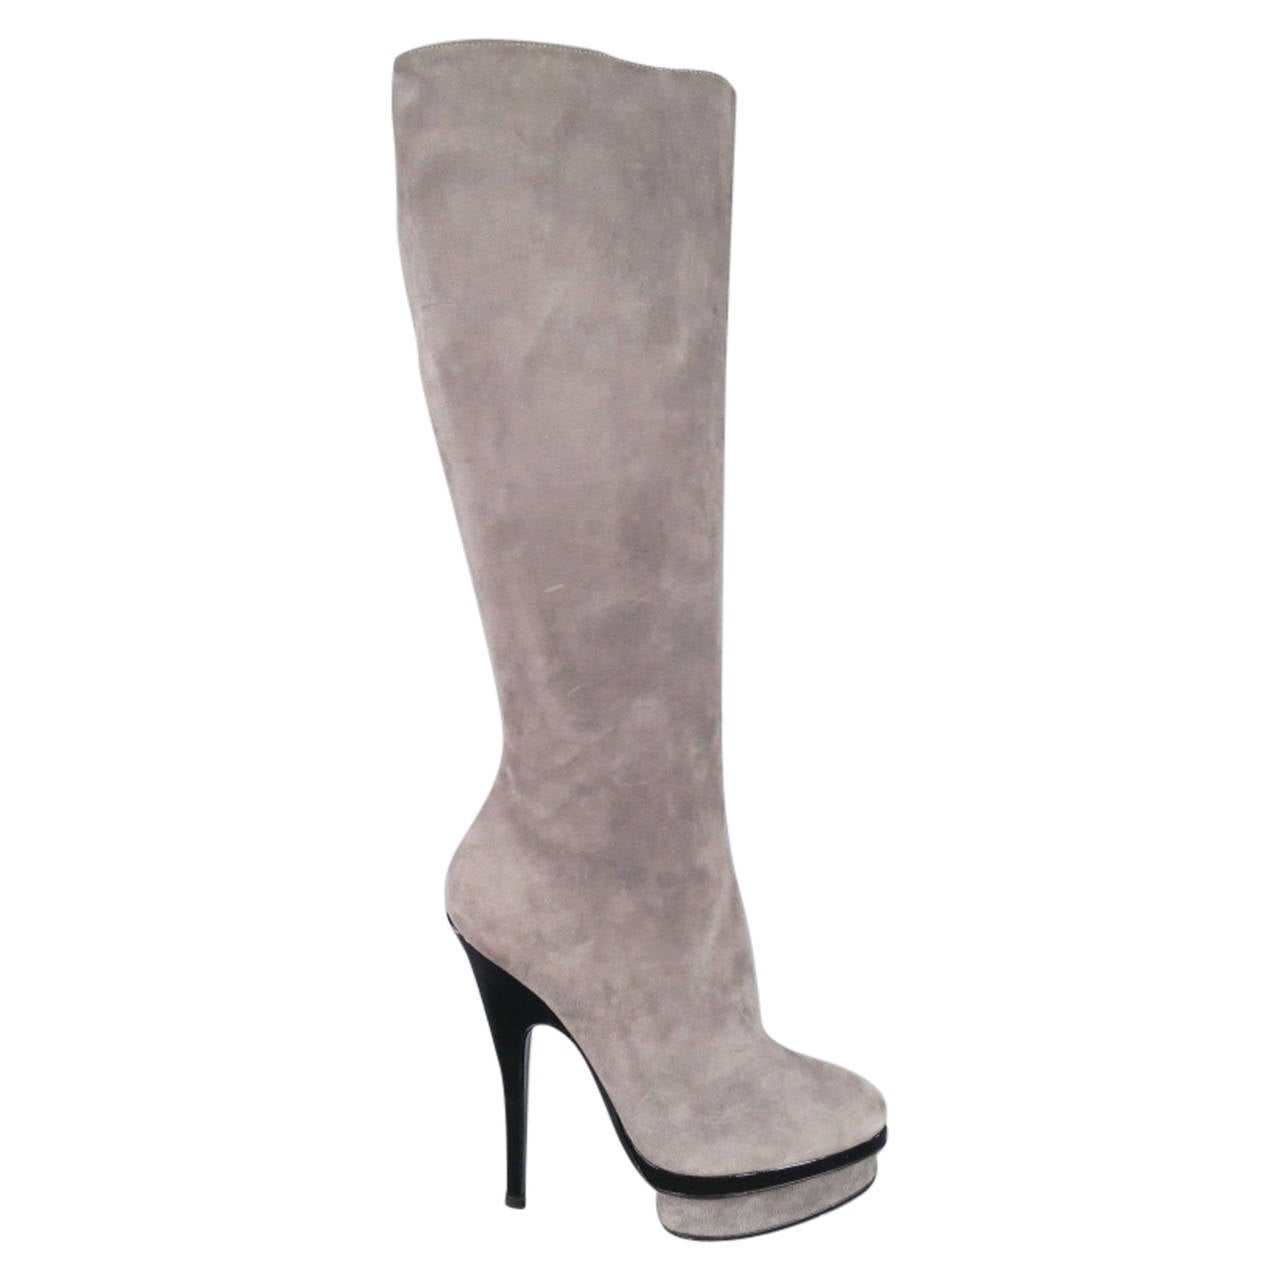 YSL Size 8 Gray Suede Stacked Platform Knee High Boots For Sale